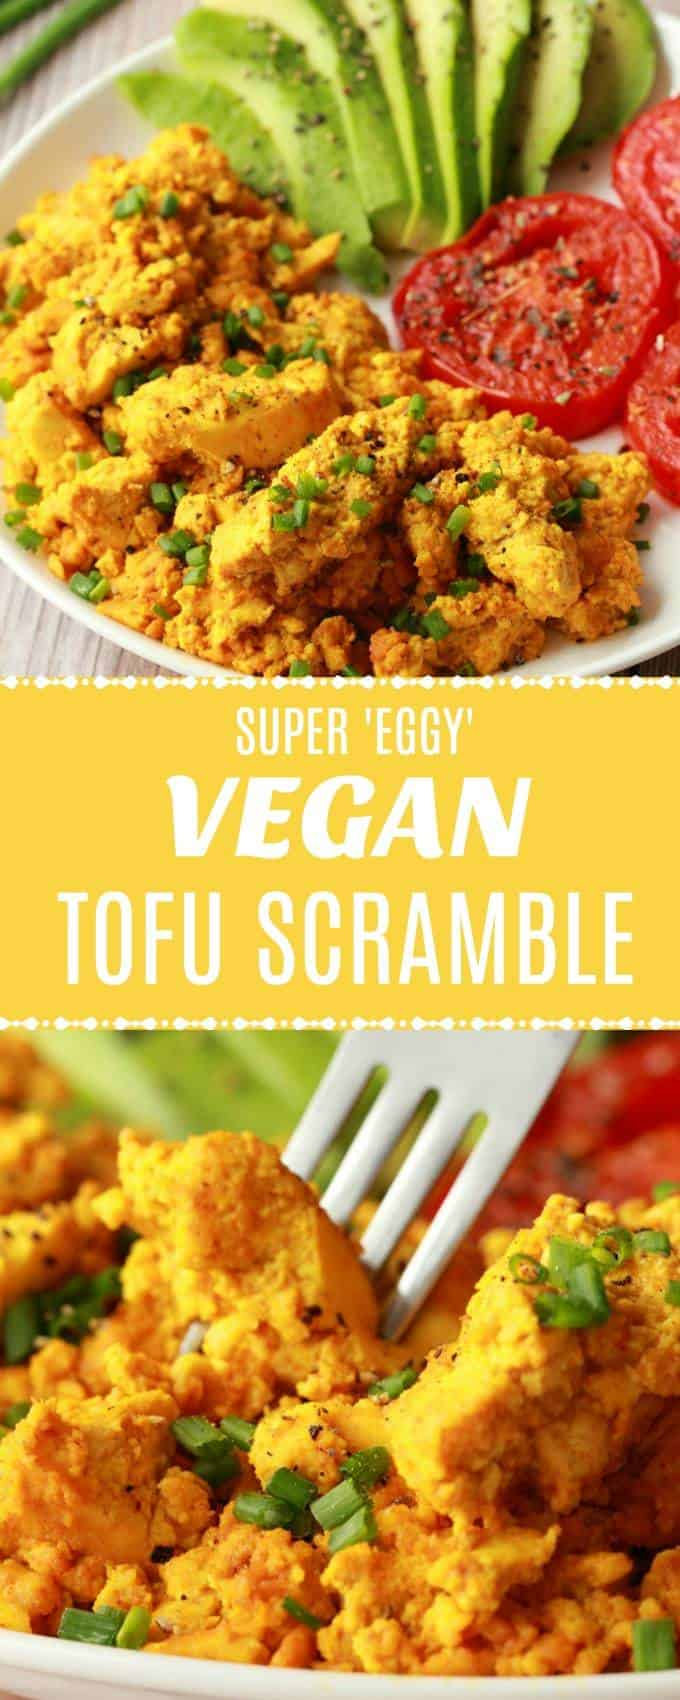 High protein and super eggy vegan tofu scramble! This hearty and satisfying vegan breakfast is super close to scrambled eggs in taste without actually being scrambled eggs, which is super cool! Perfect for vegans who miss eggs and those who just want a hearty healthy breakfast. | lovingitvegan.com